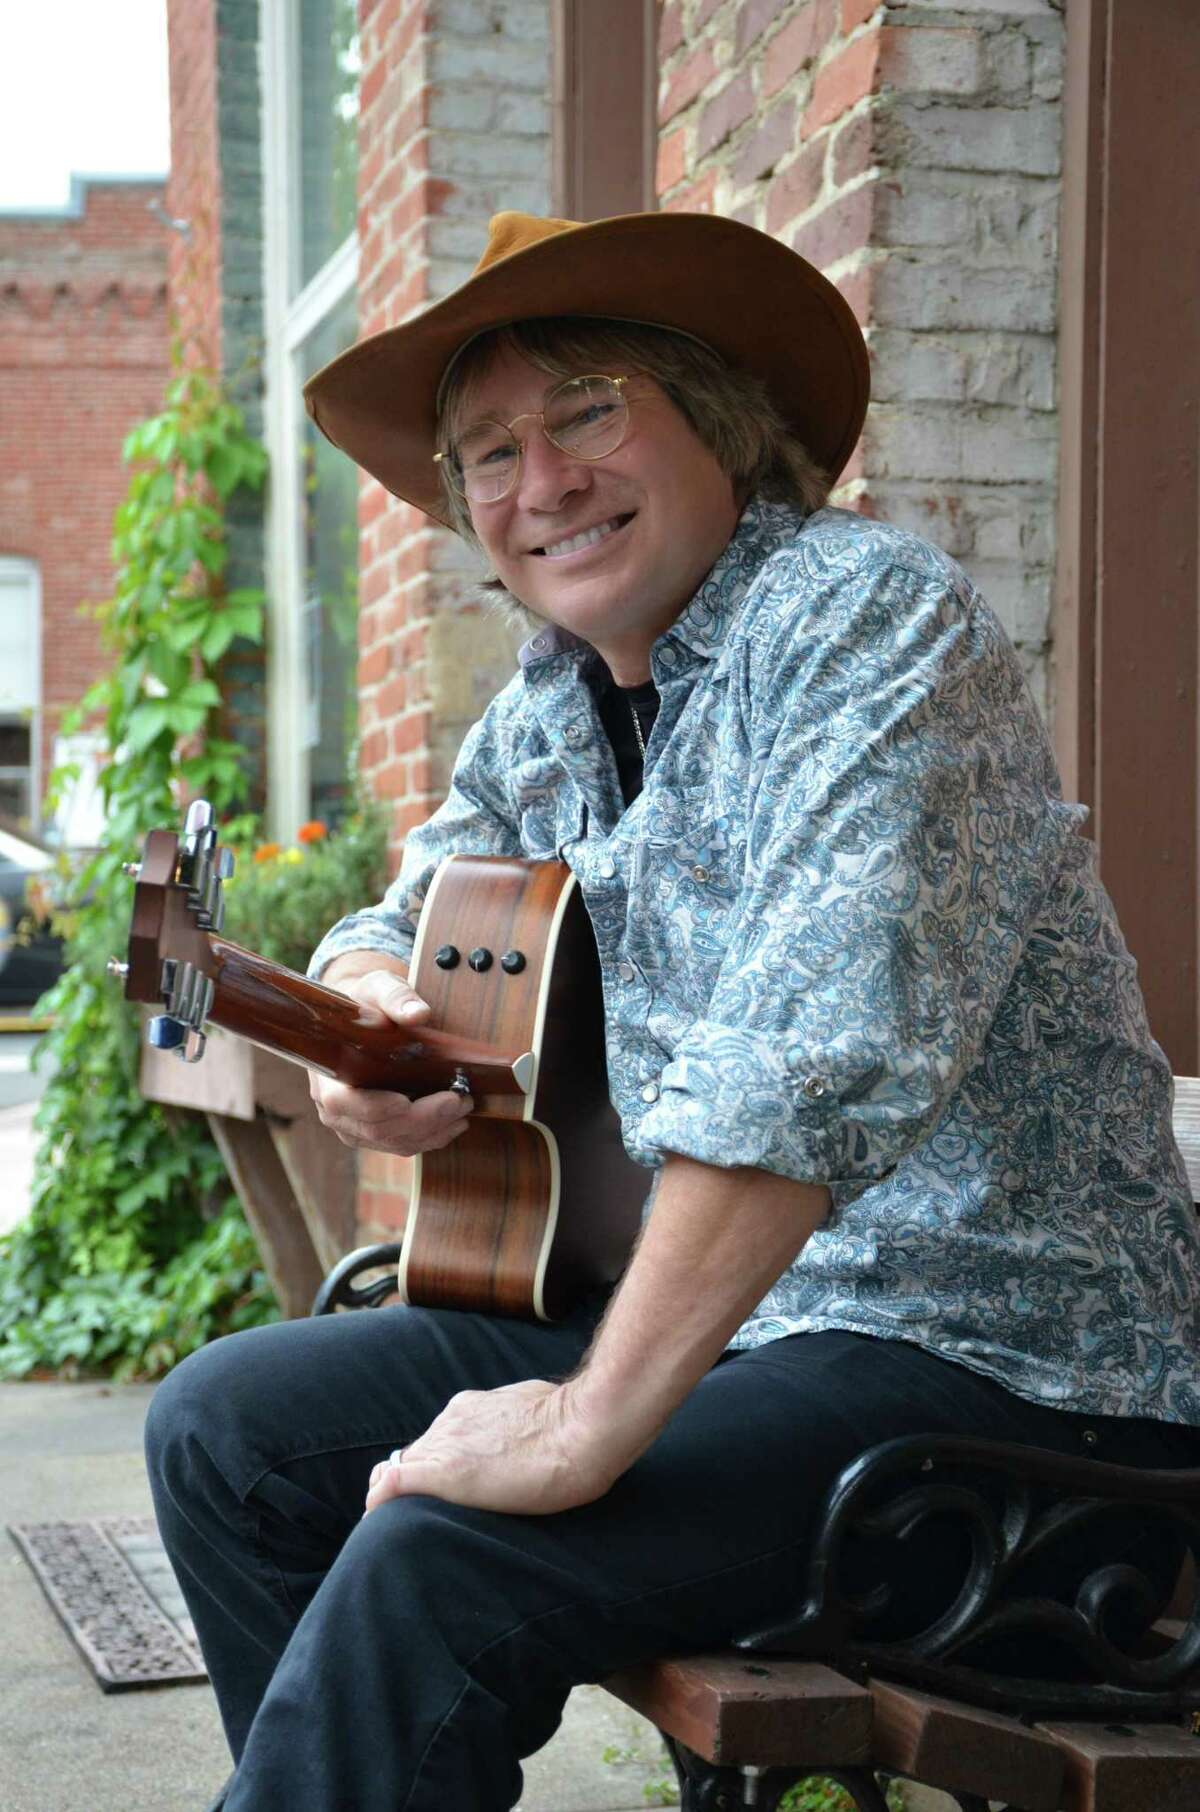 Singer/musician Ted Vigil pays tribute to John Denver at The Kate in Old Saybrook, on Oct. 11, and Danbury's Palace Theatre, on Oct. 13.